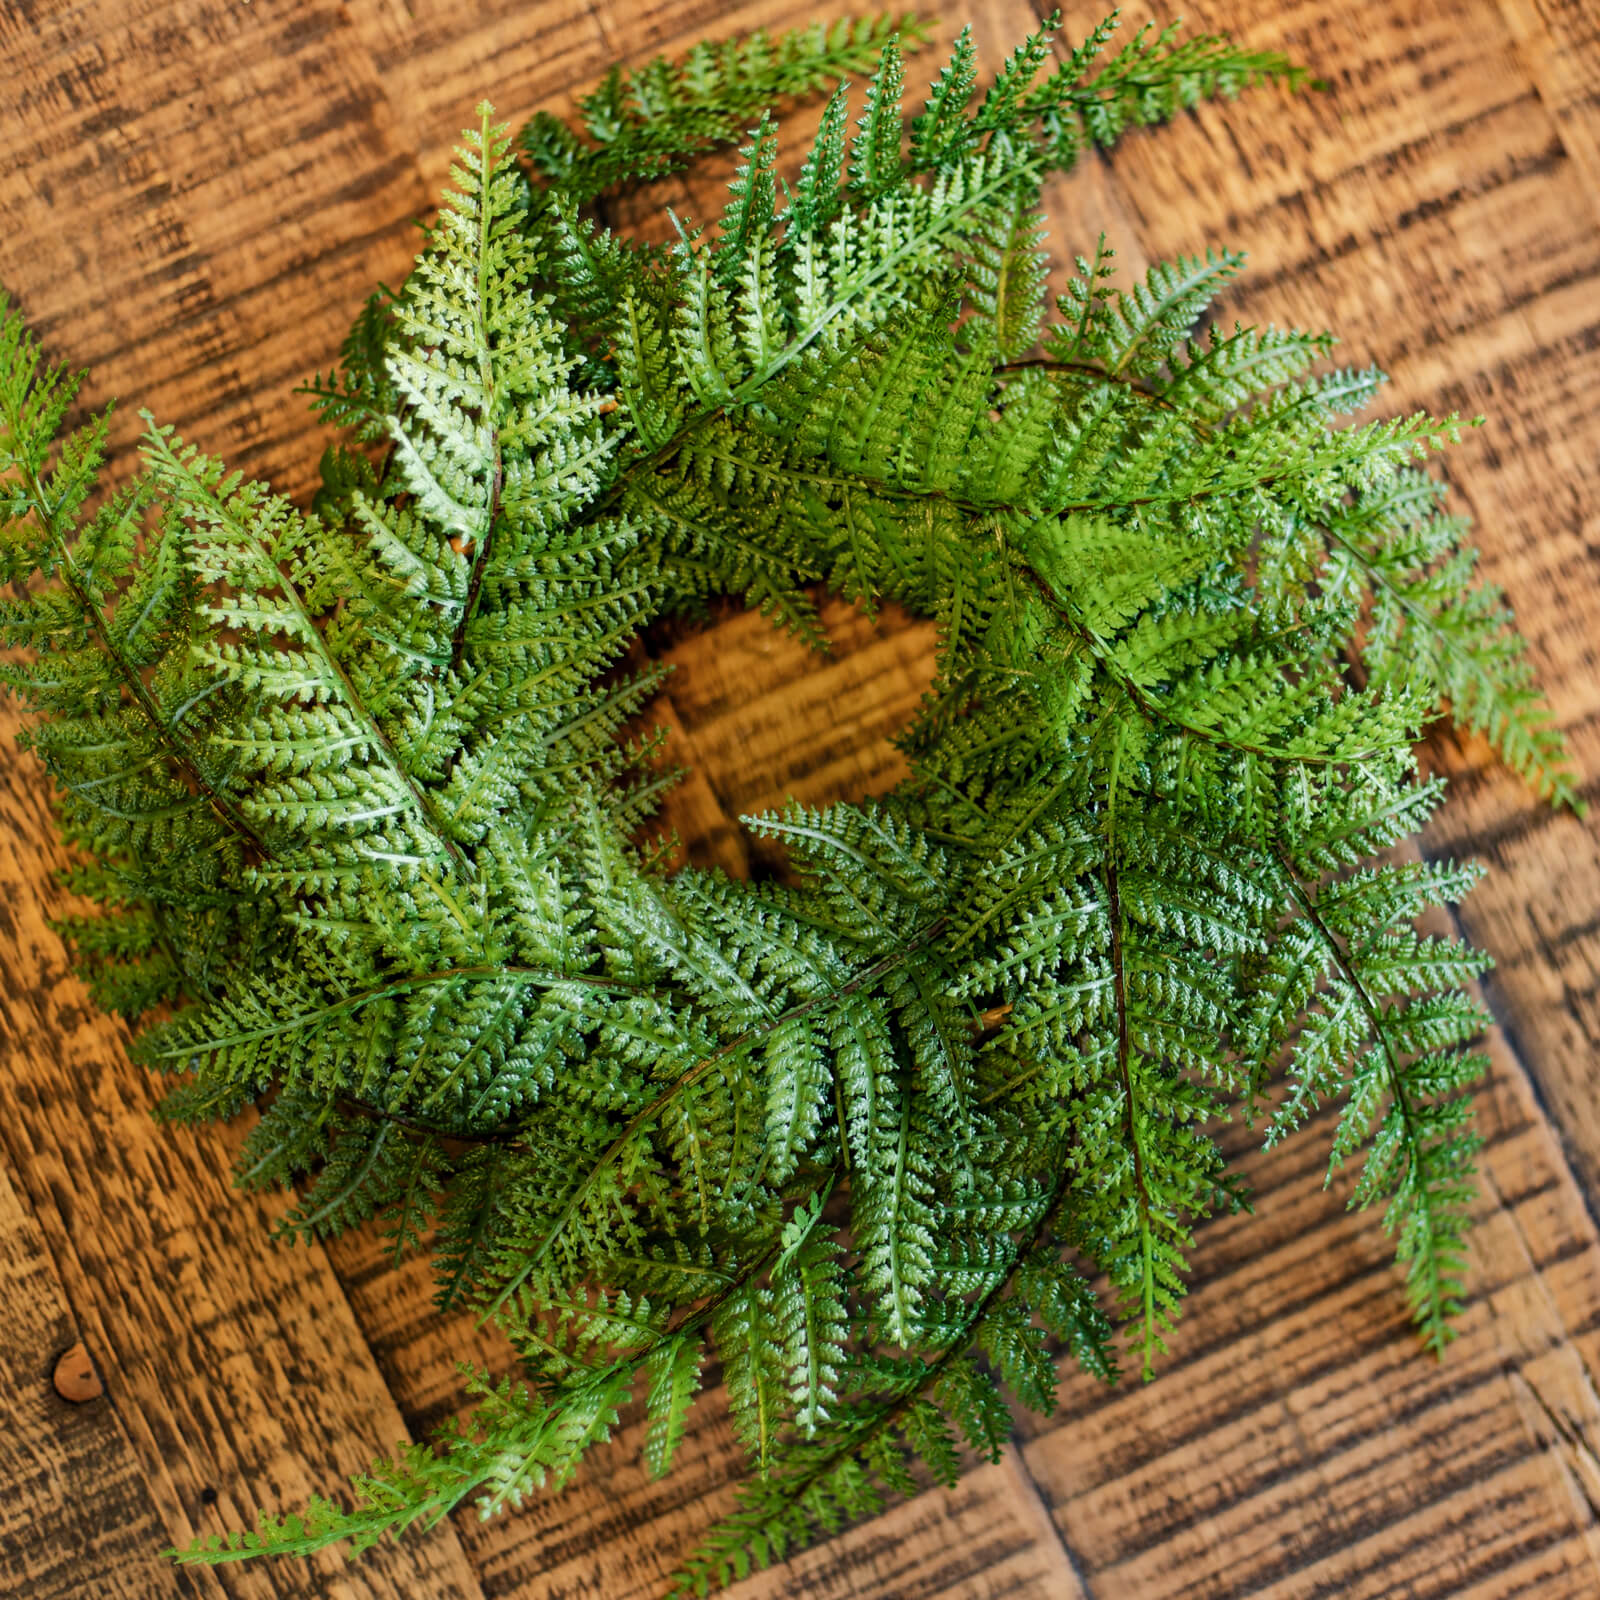 A gorgeous spring greenery wreath made of faux wispy fern leaves, resting on a wooden table new Olathe, Kansas.